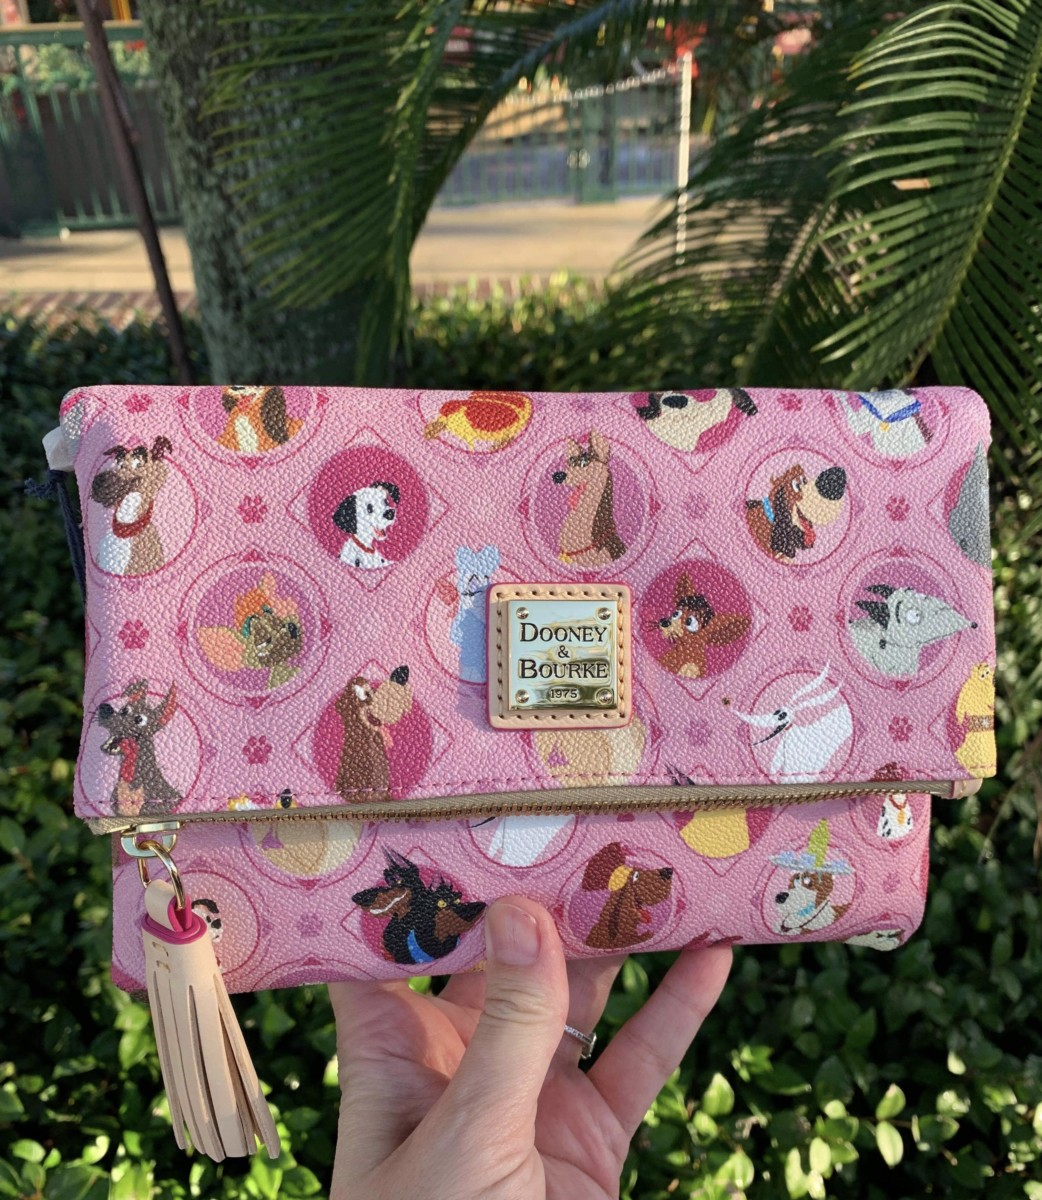 Let's wrap up this week in new Disney Merch! #DisneyStyle 7